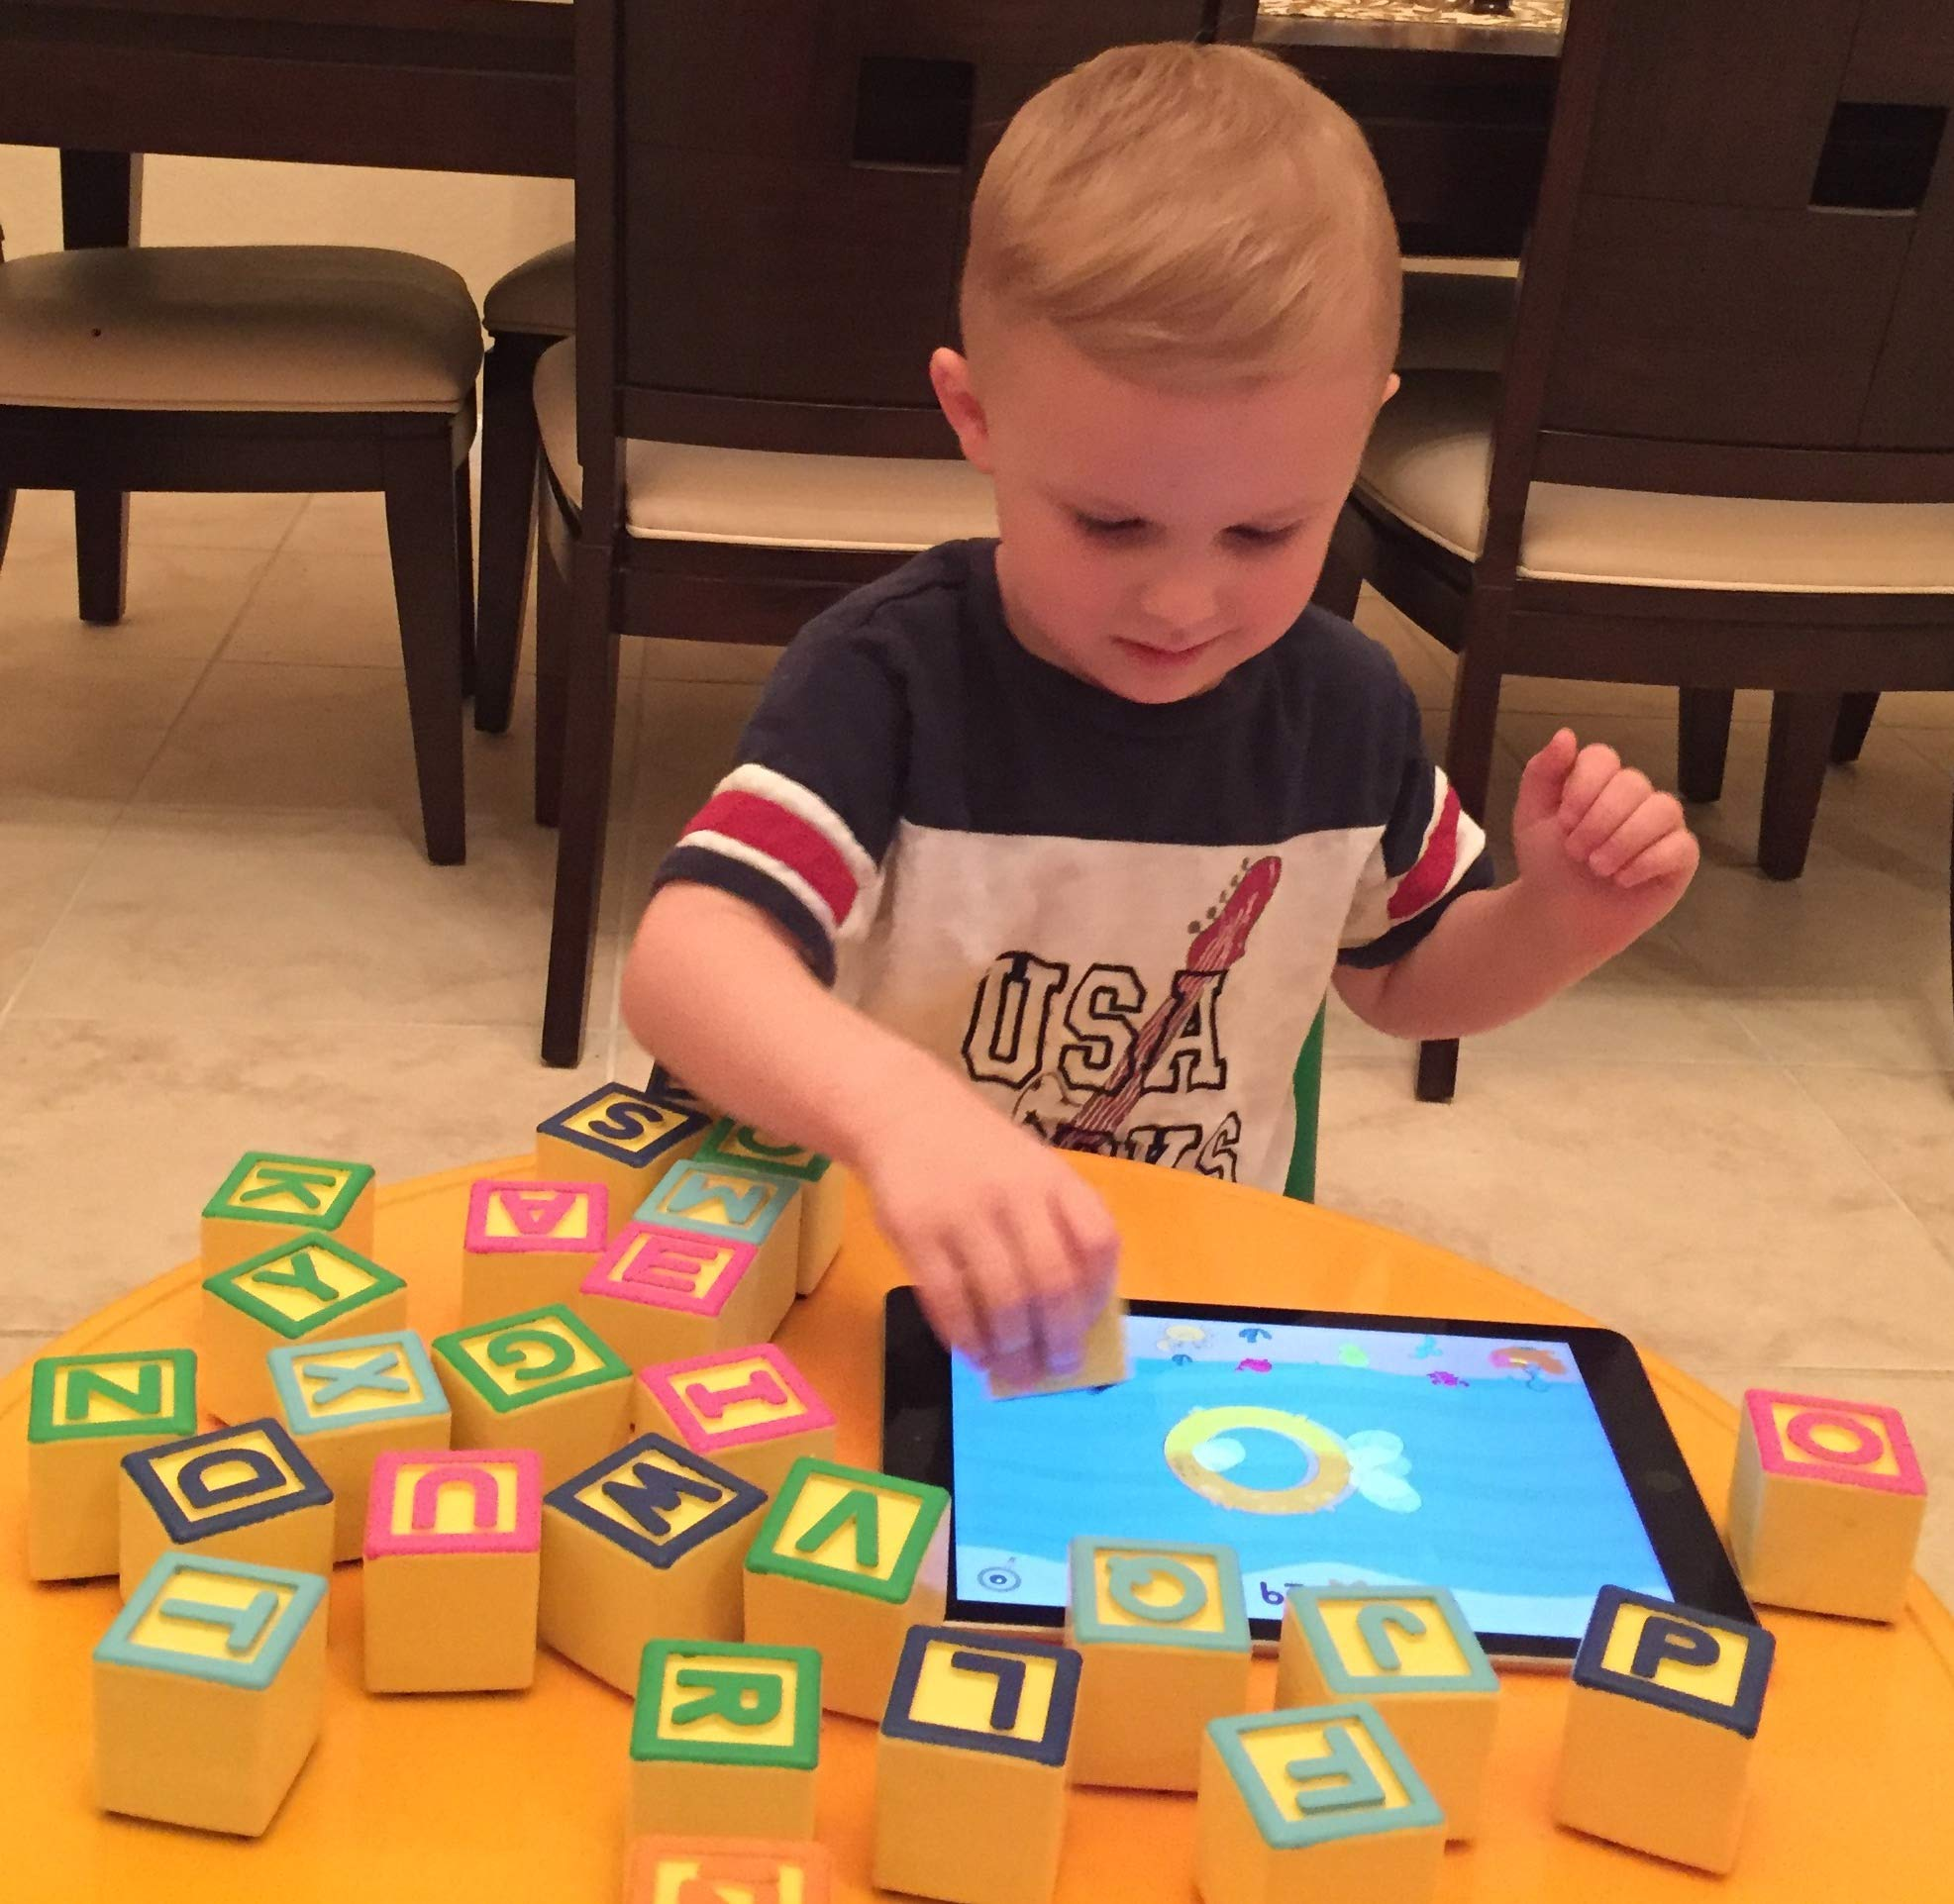 Montessori Toys for ABC Learning | Smart Alphabet Blocks for Interactive Educational iPad Games for Preschool & Kindergarten | Learn English & Spanish | Toddlers & Kids 1-6 | Includes 5 Free Apps by AlphaTechBlocks (Image #5)